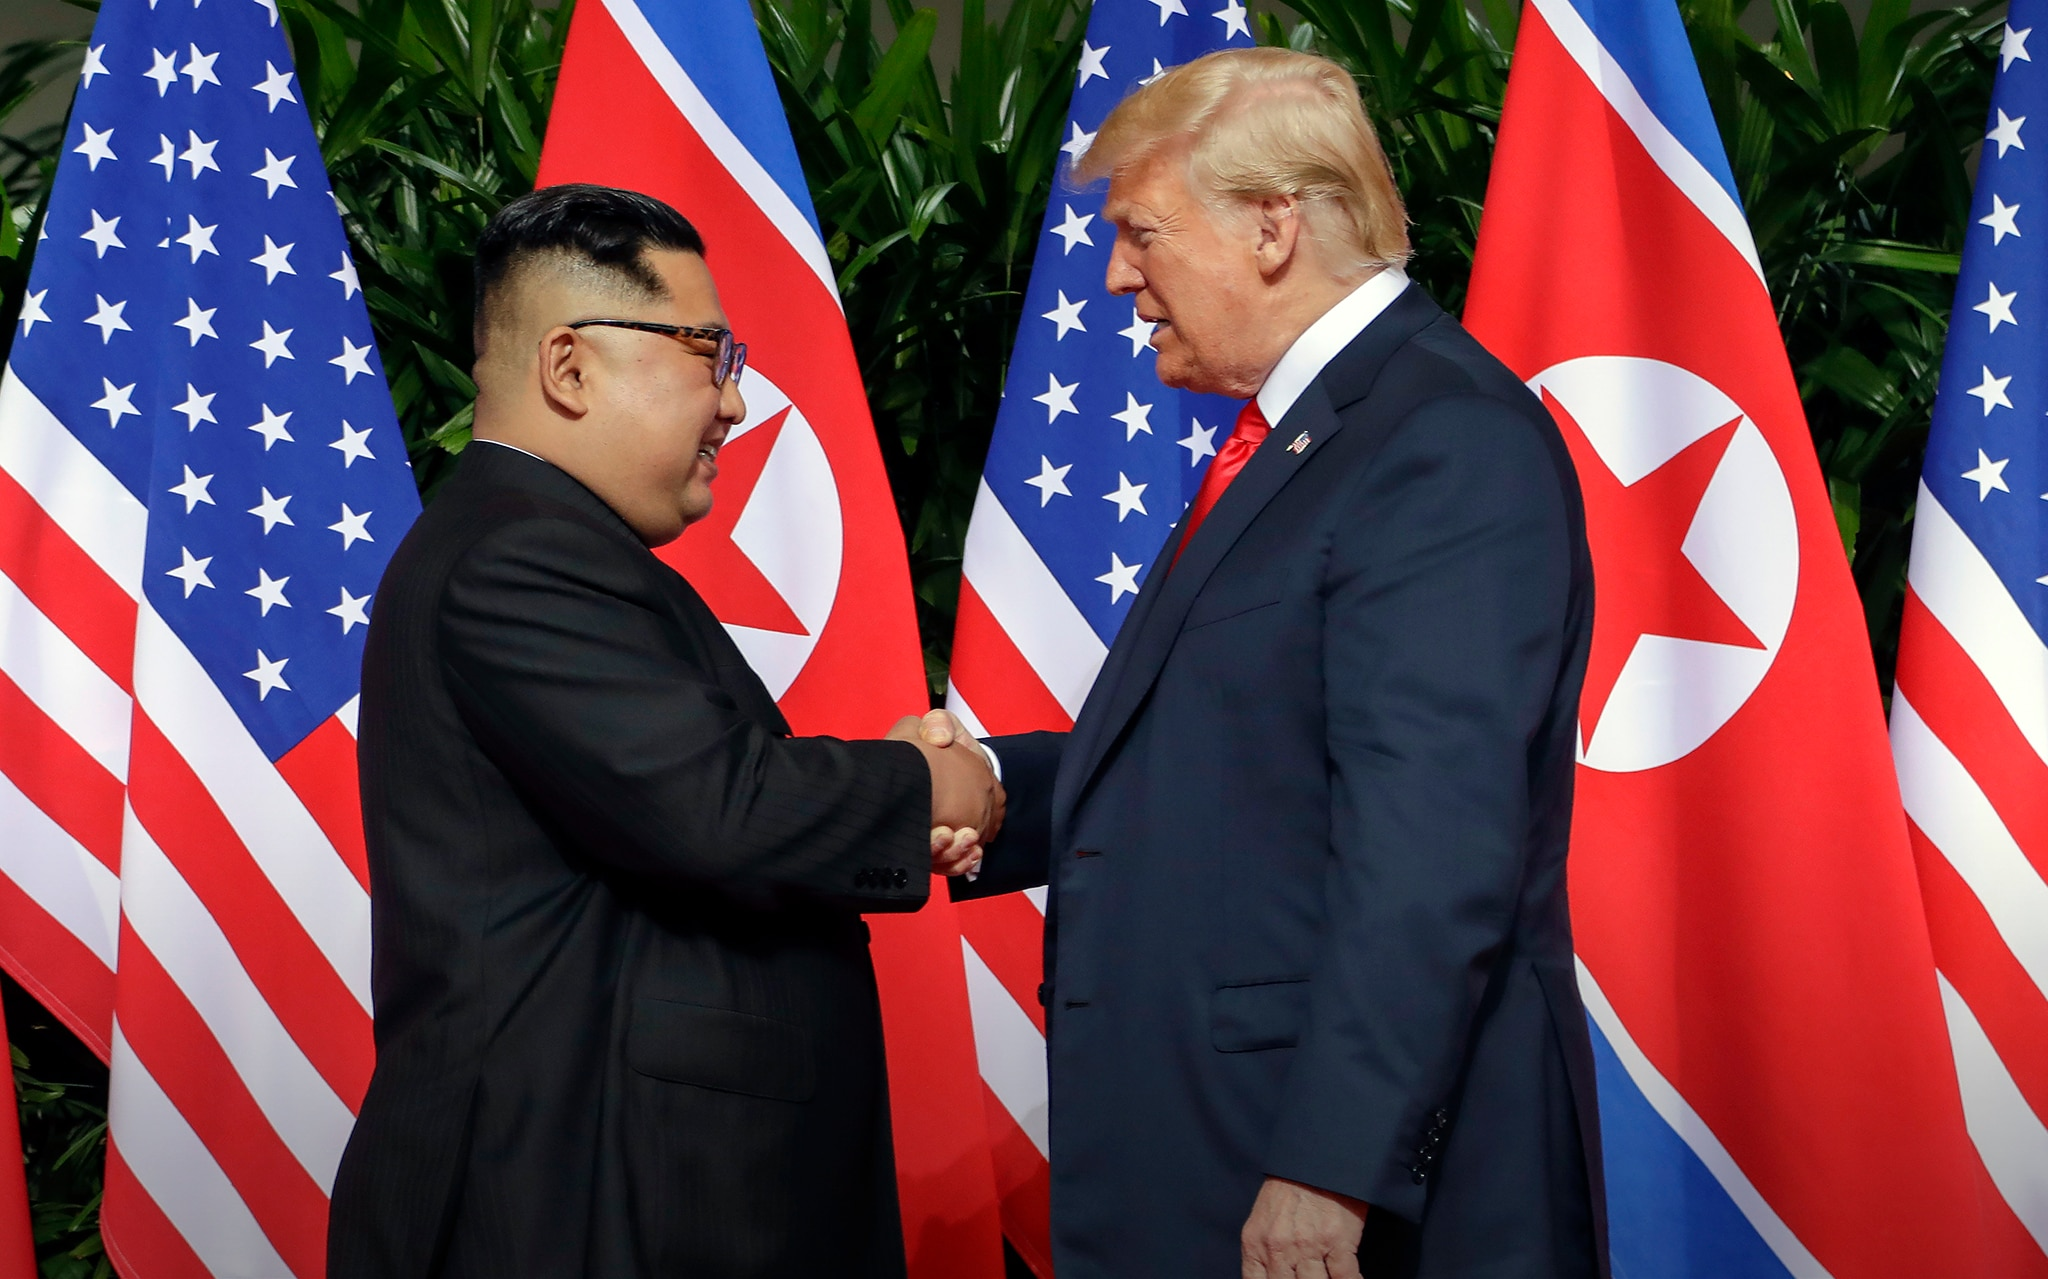 Kim Jong Un and President Trump shaking hands in front of U.S. and North Korean flags (© Evan Vucci/AP Images)